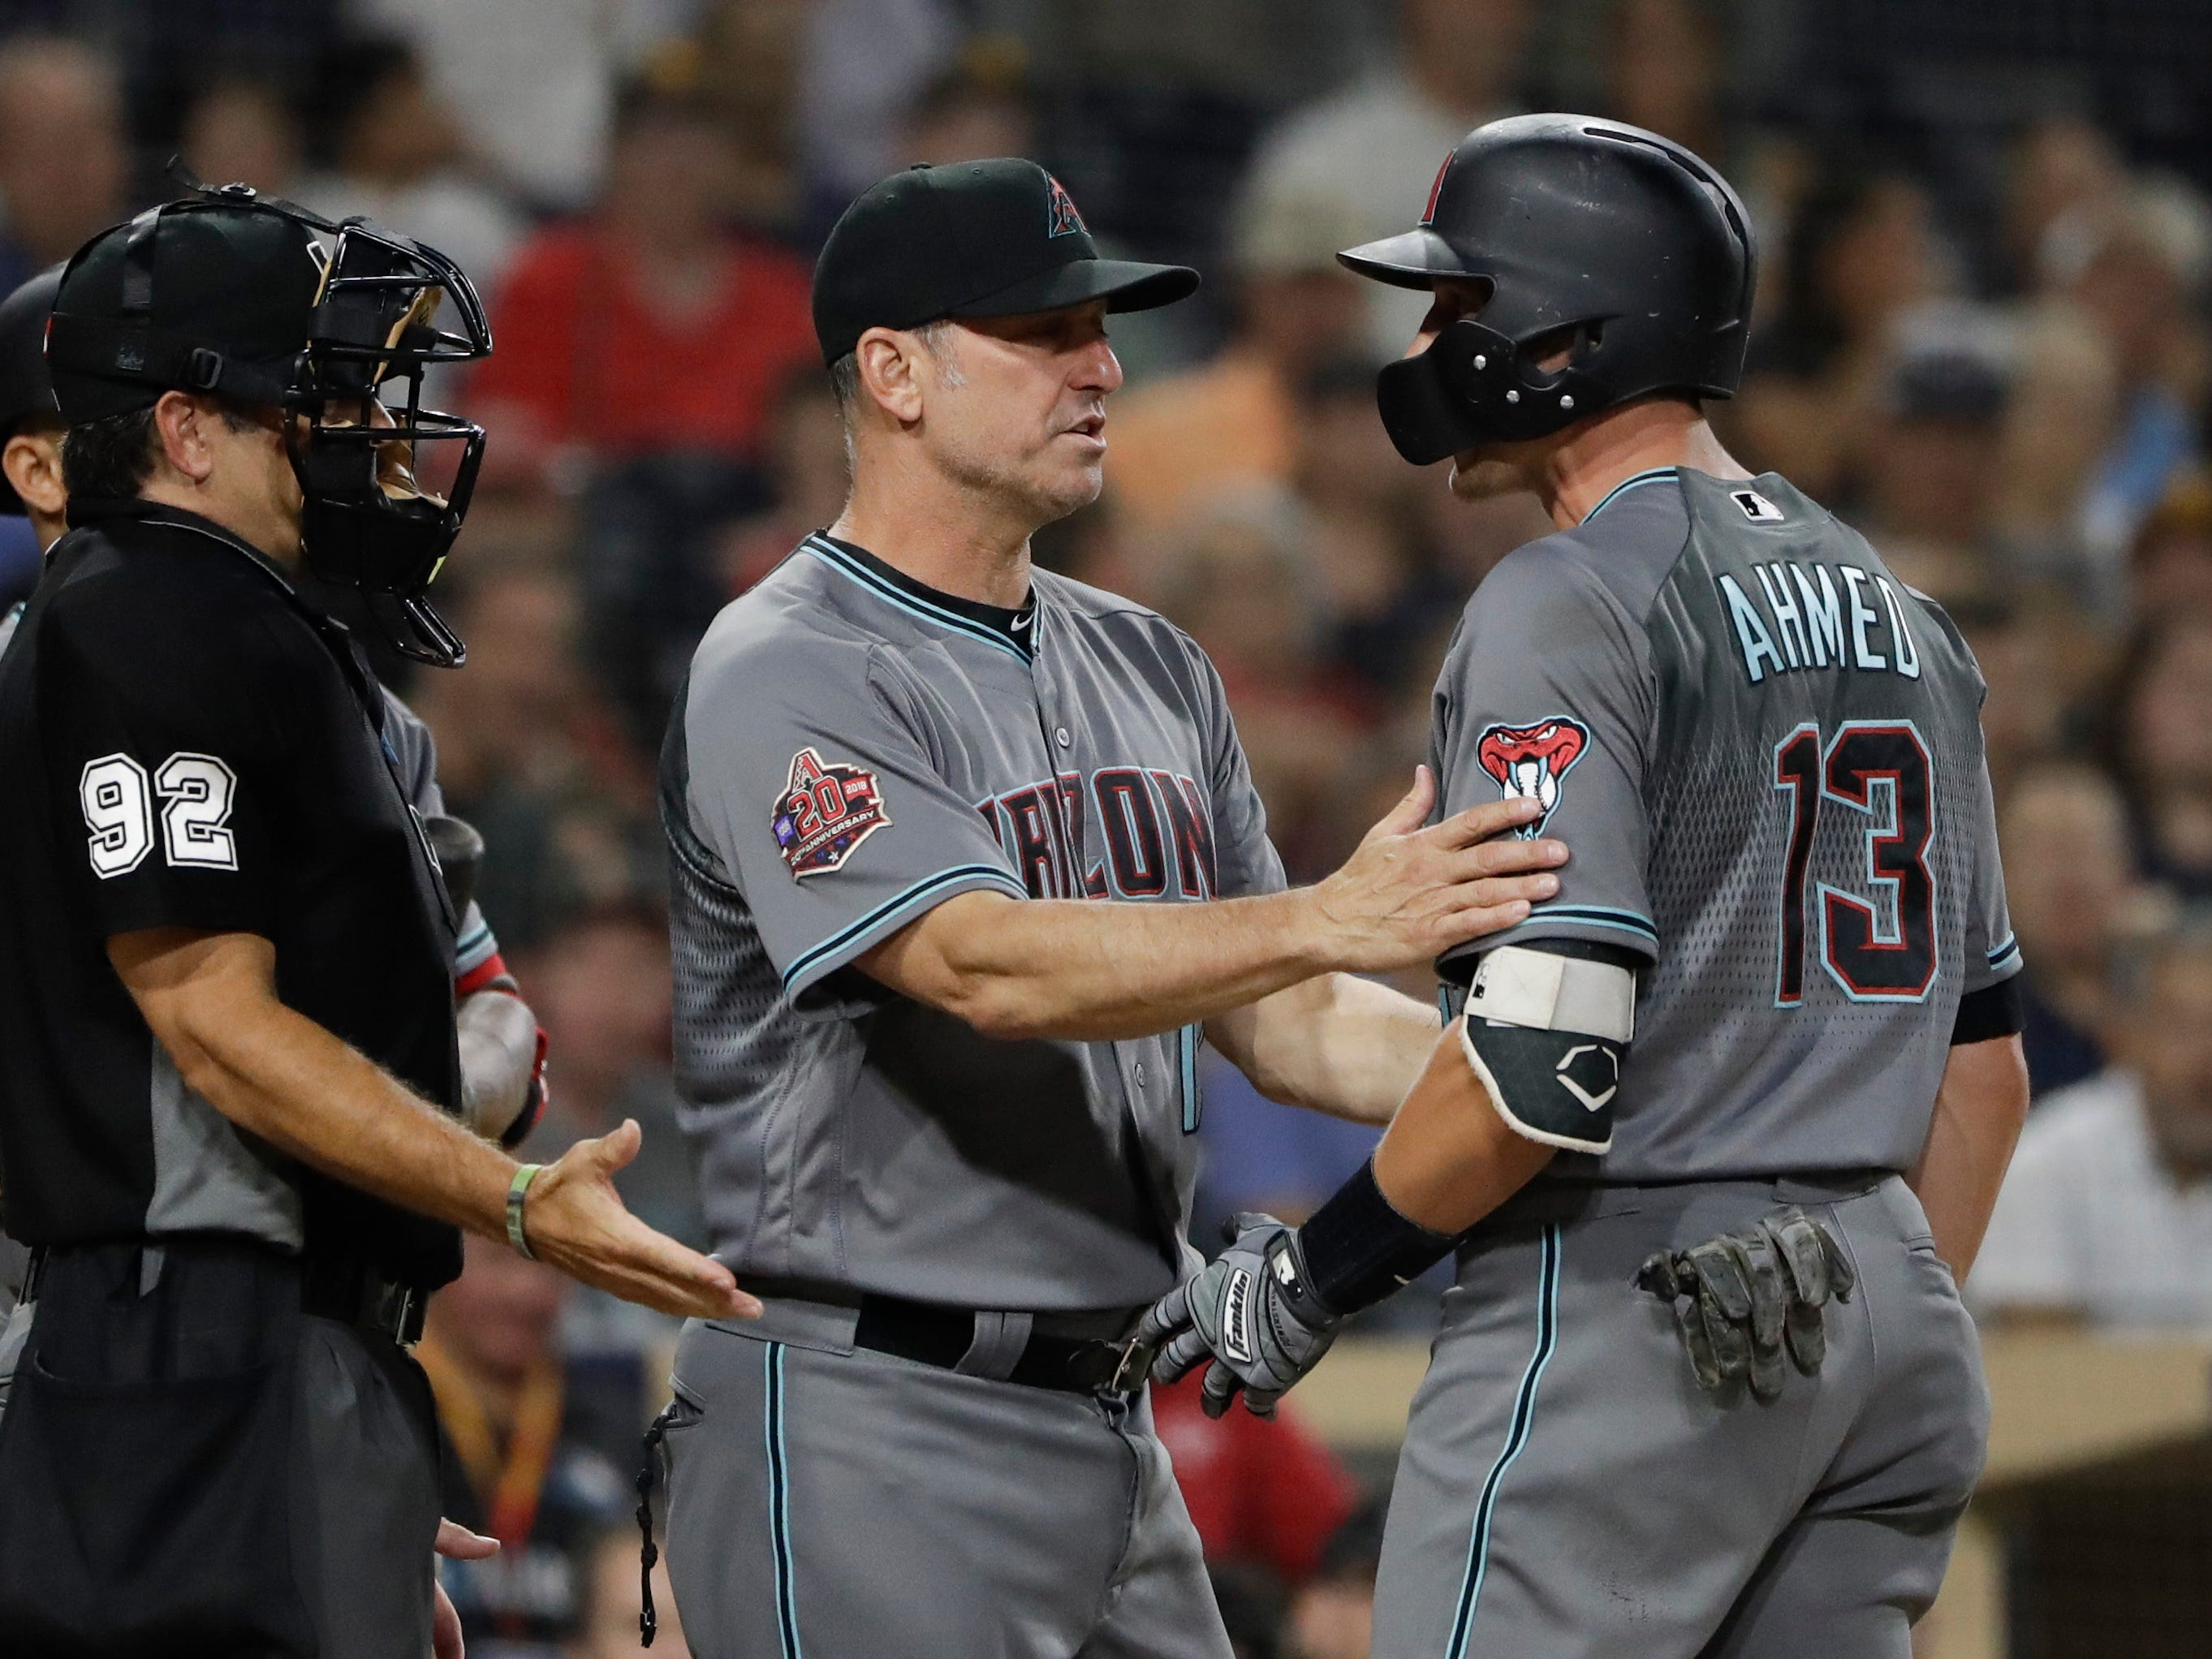 Arizona Diamondbacks' Nick Ahmed, right, is held back by manager Torey Lovullo, center, as he argues with umpire James Hoye during the third inning of a baseball game against the San Diego Padres Friday, Aug. 17, 2018, in San Diego.